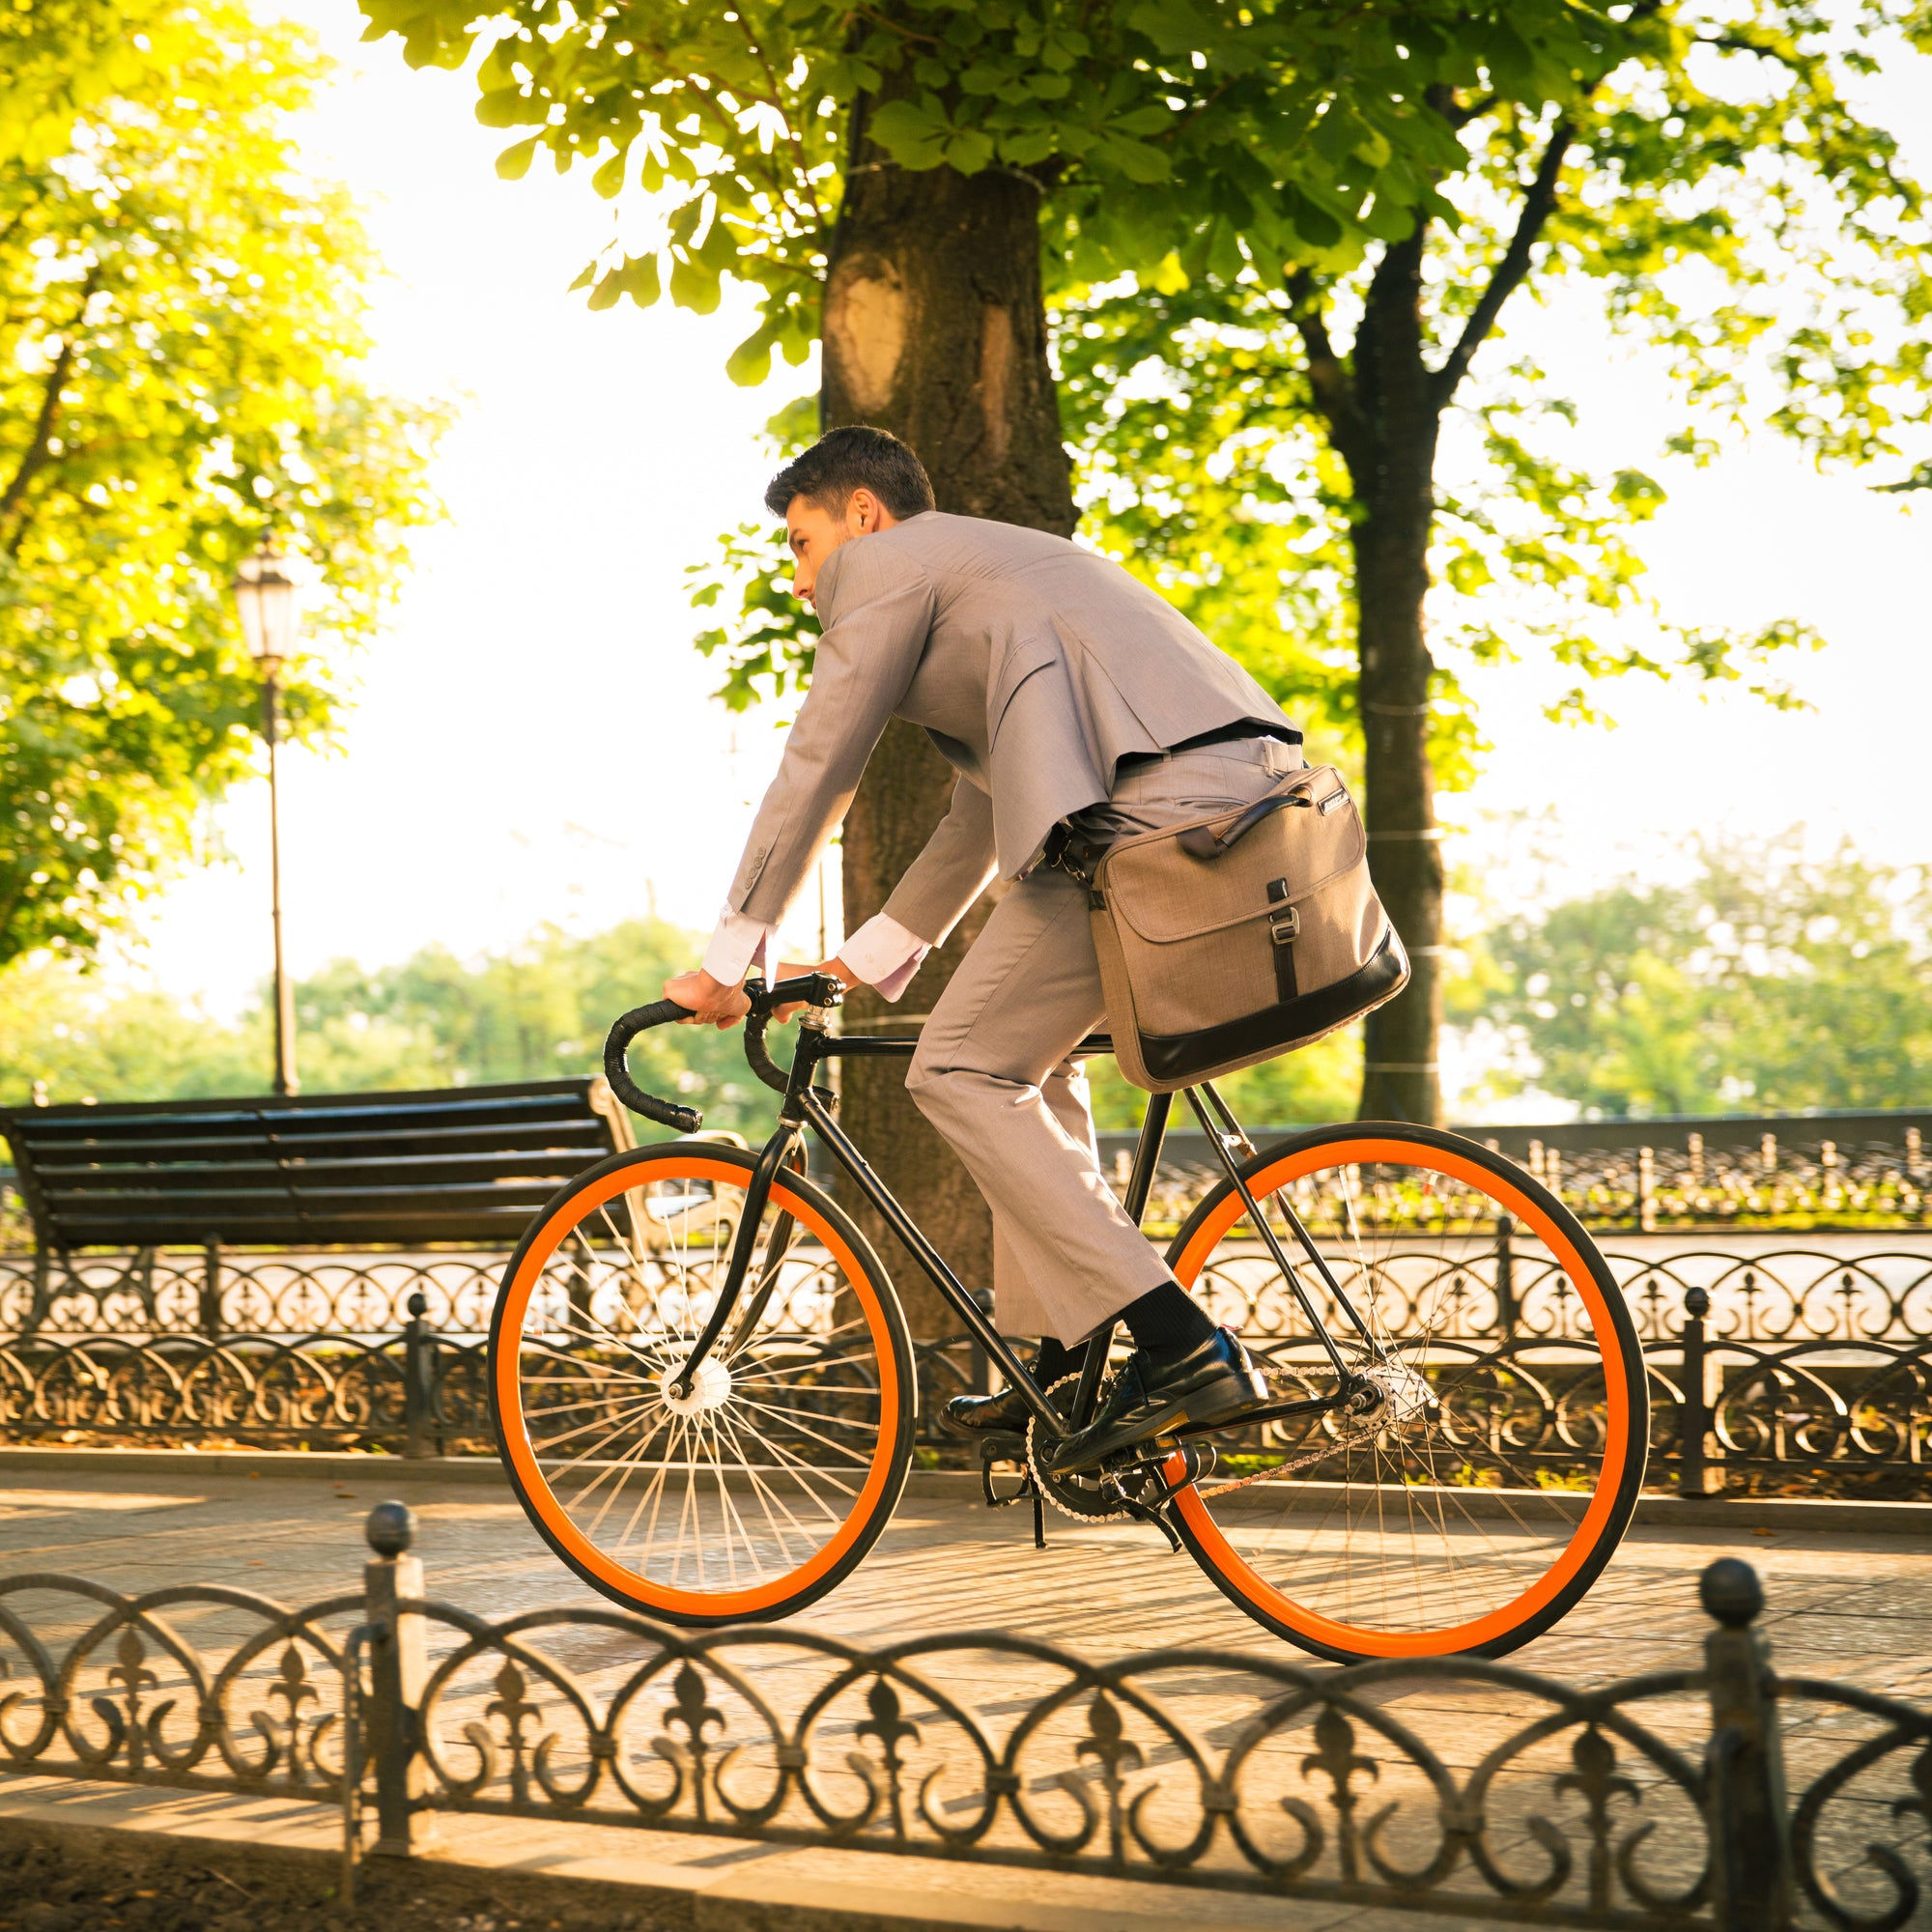 10-scenic-bike-rides-in-new-york-city